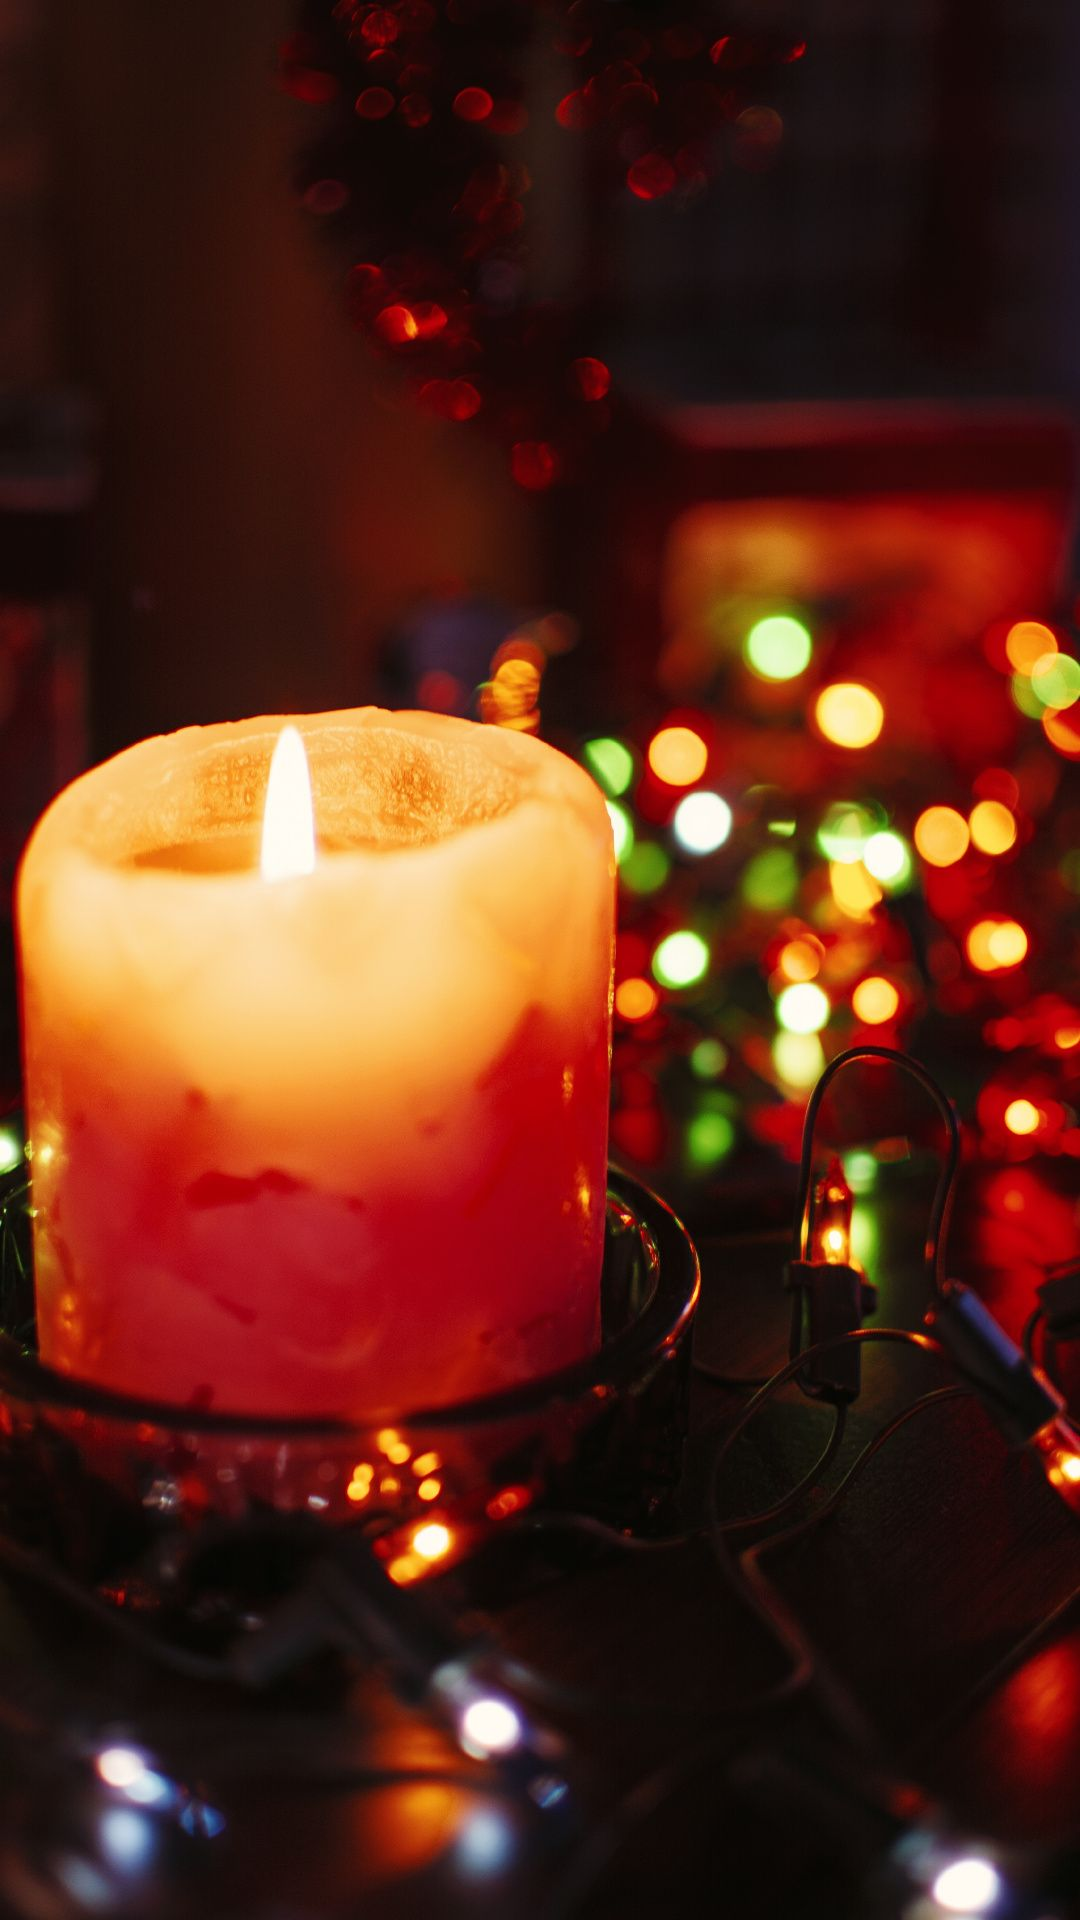 Wallpapers Interieur Christmas Eve Wax Distilled Beverage Candle Candles Wallpaper Candles Bokeh Wallpaper